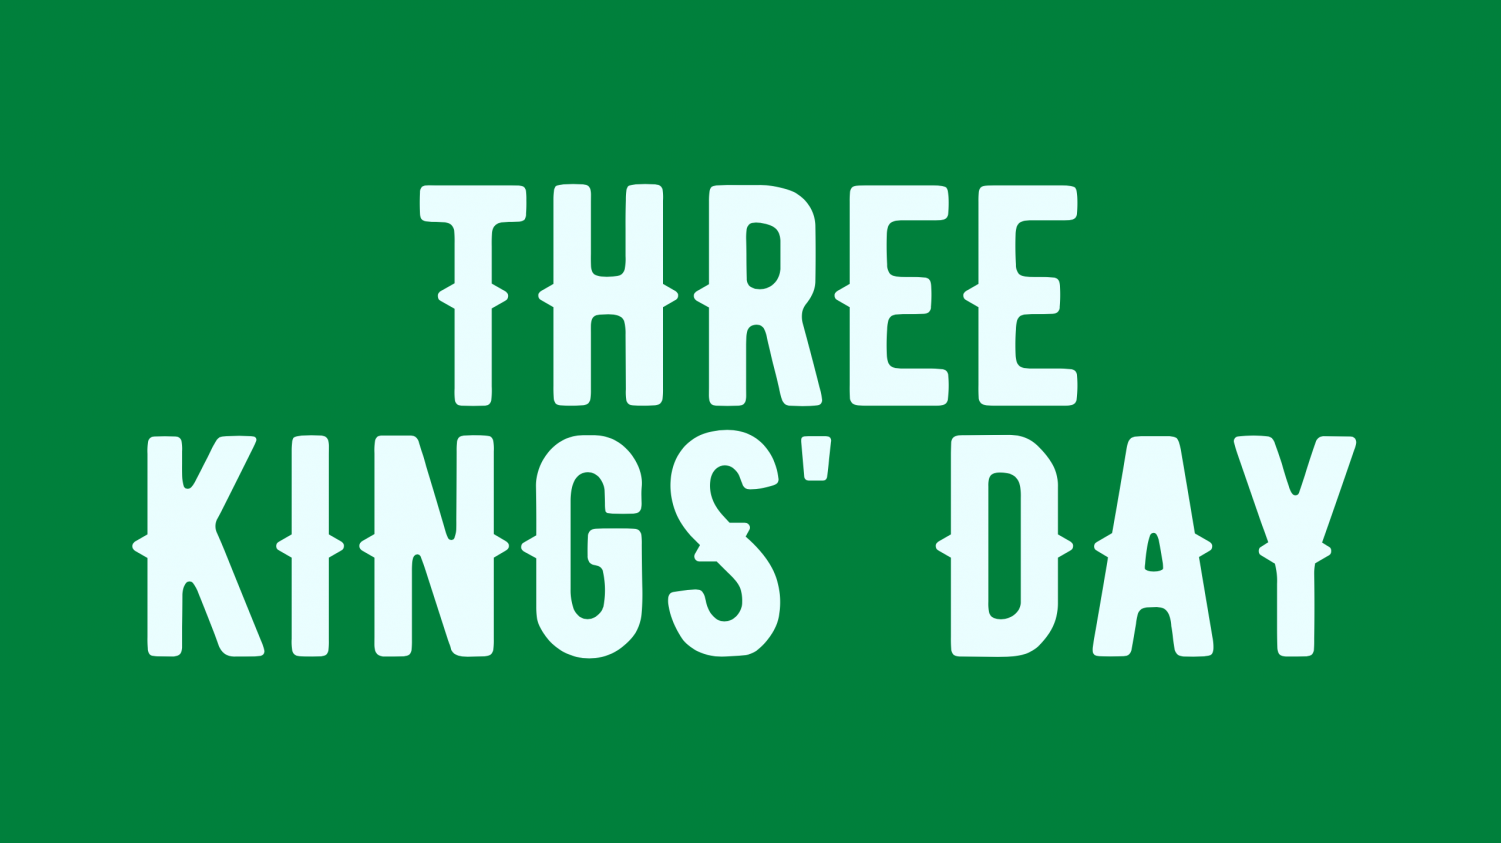 Celebrations of Three Kings' Day